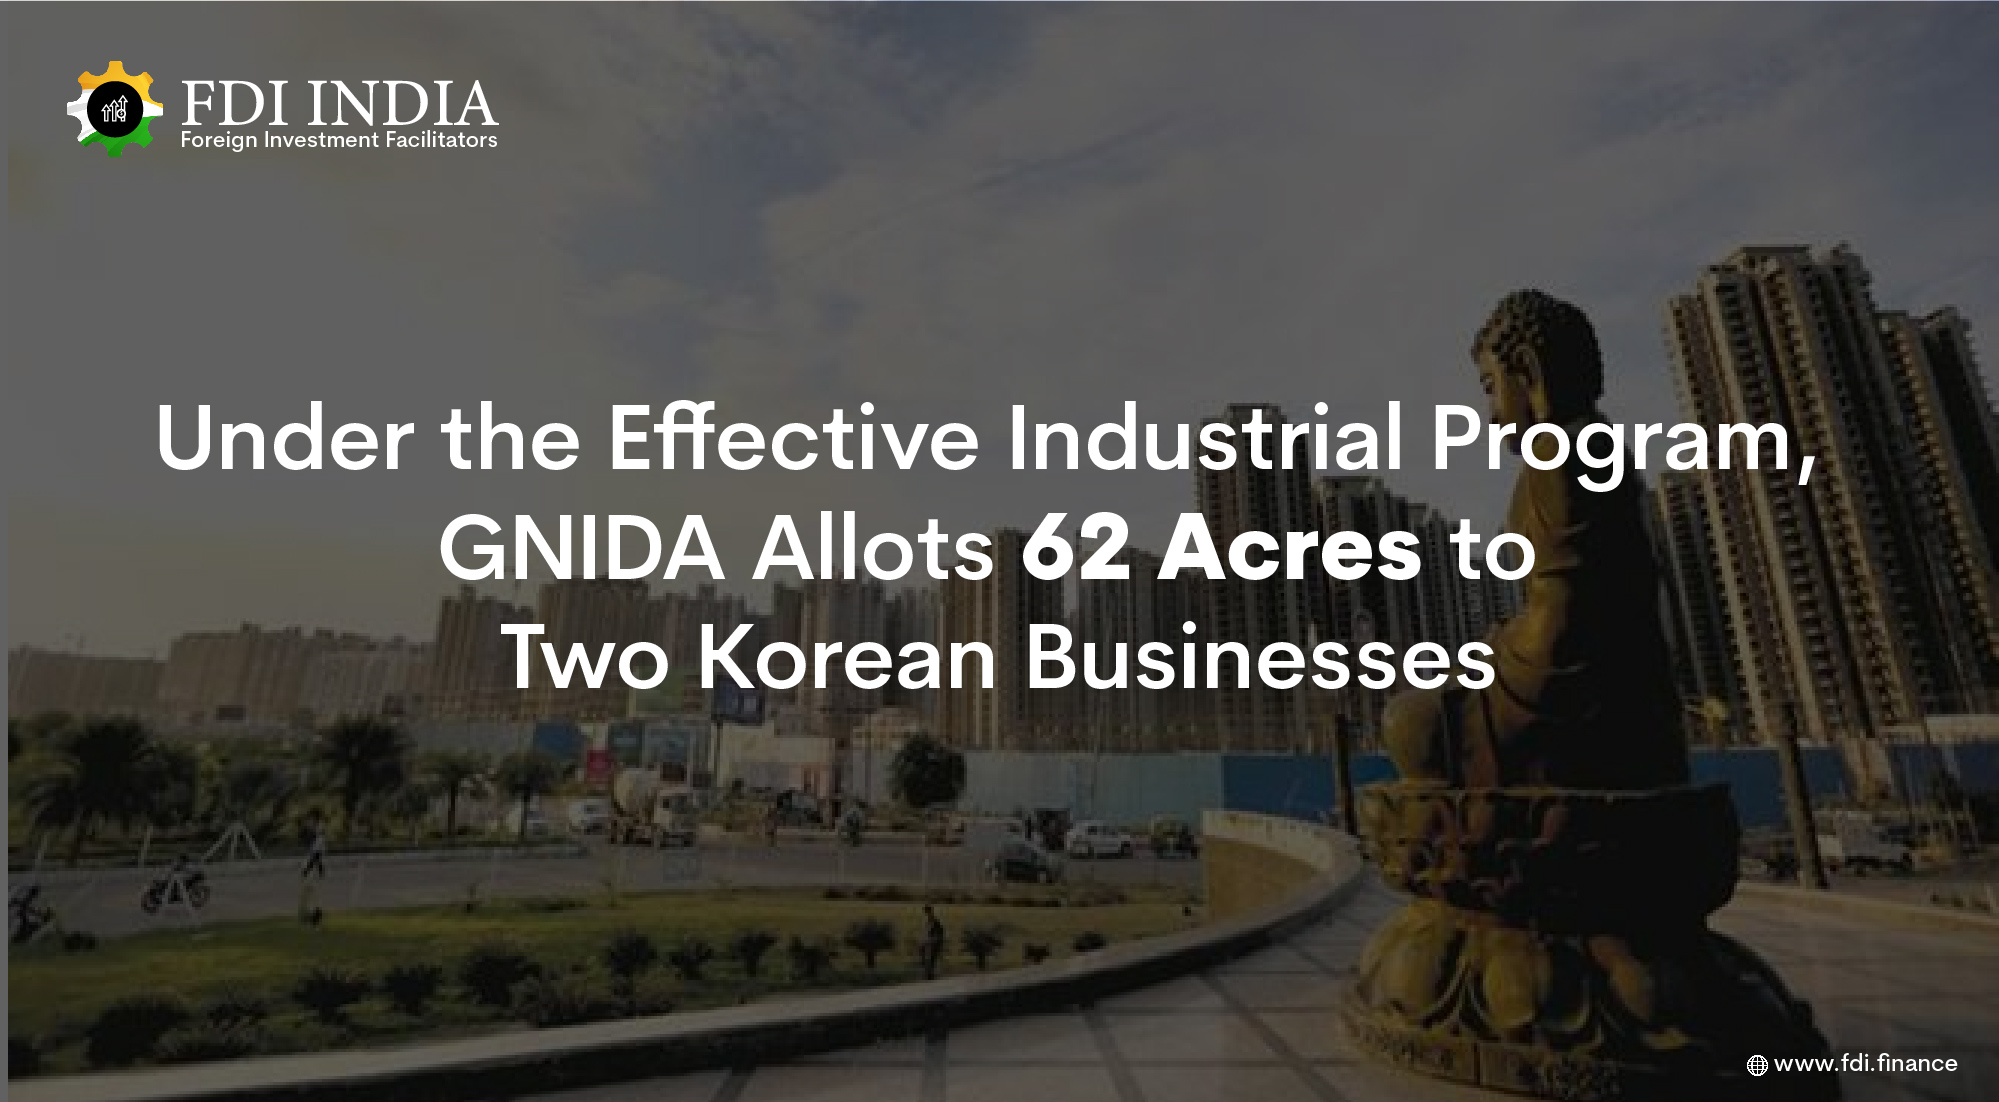 Under the Effective Industrial Program, GNIDA Allots 62 Acres to Two Korean Businesses